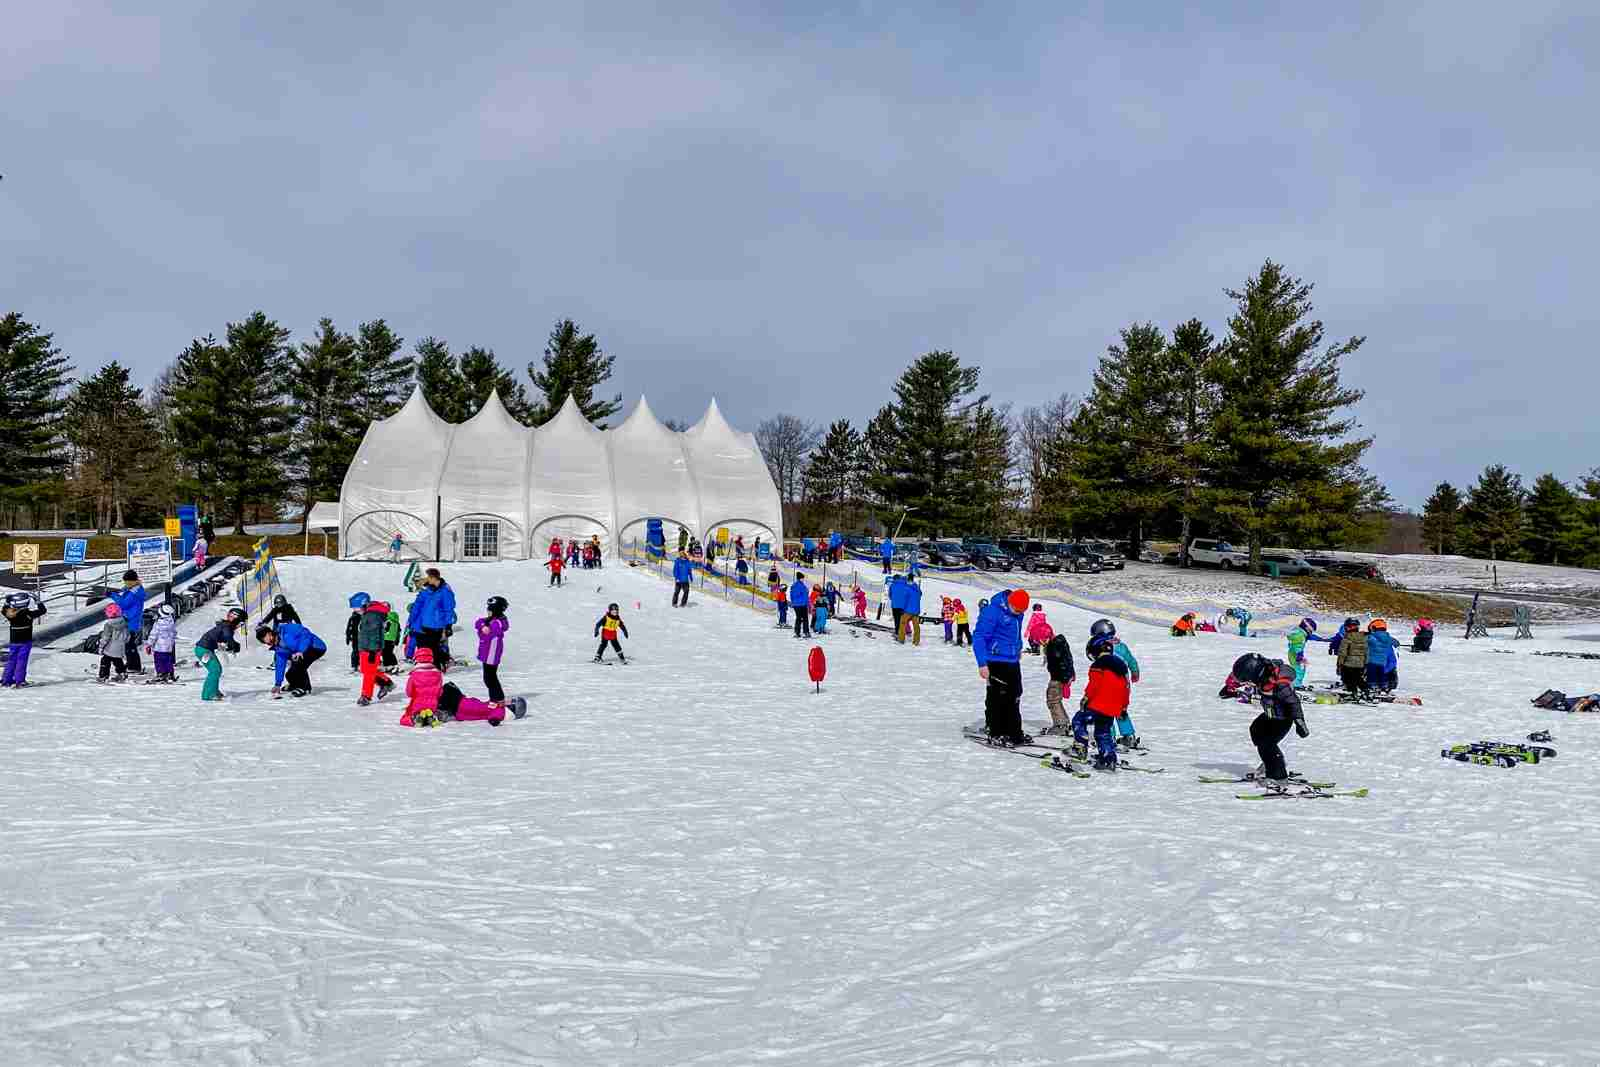 Ski school (Photo by Summer Hull/The Points Guy)